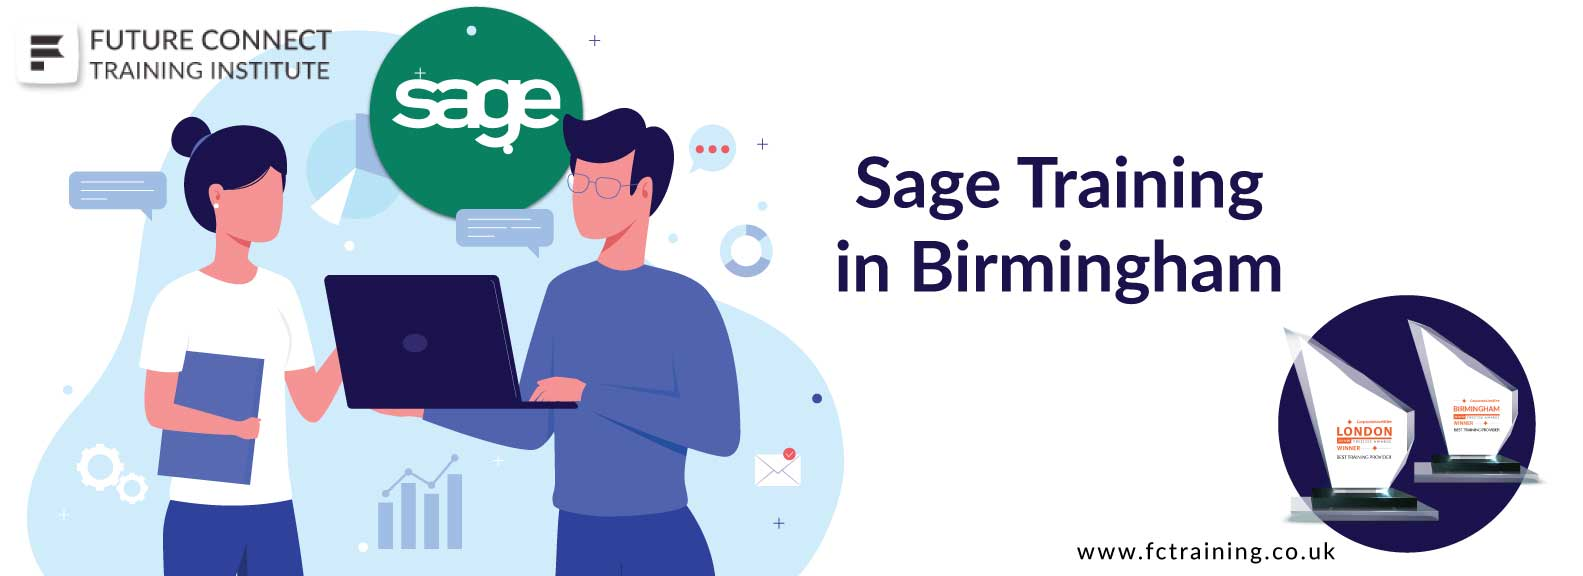 Sage Training in Birmingham